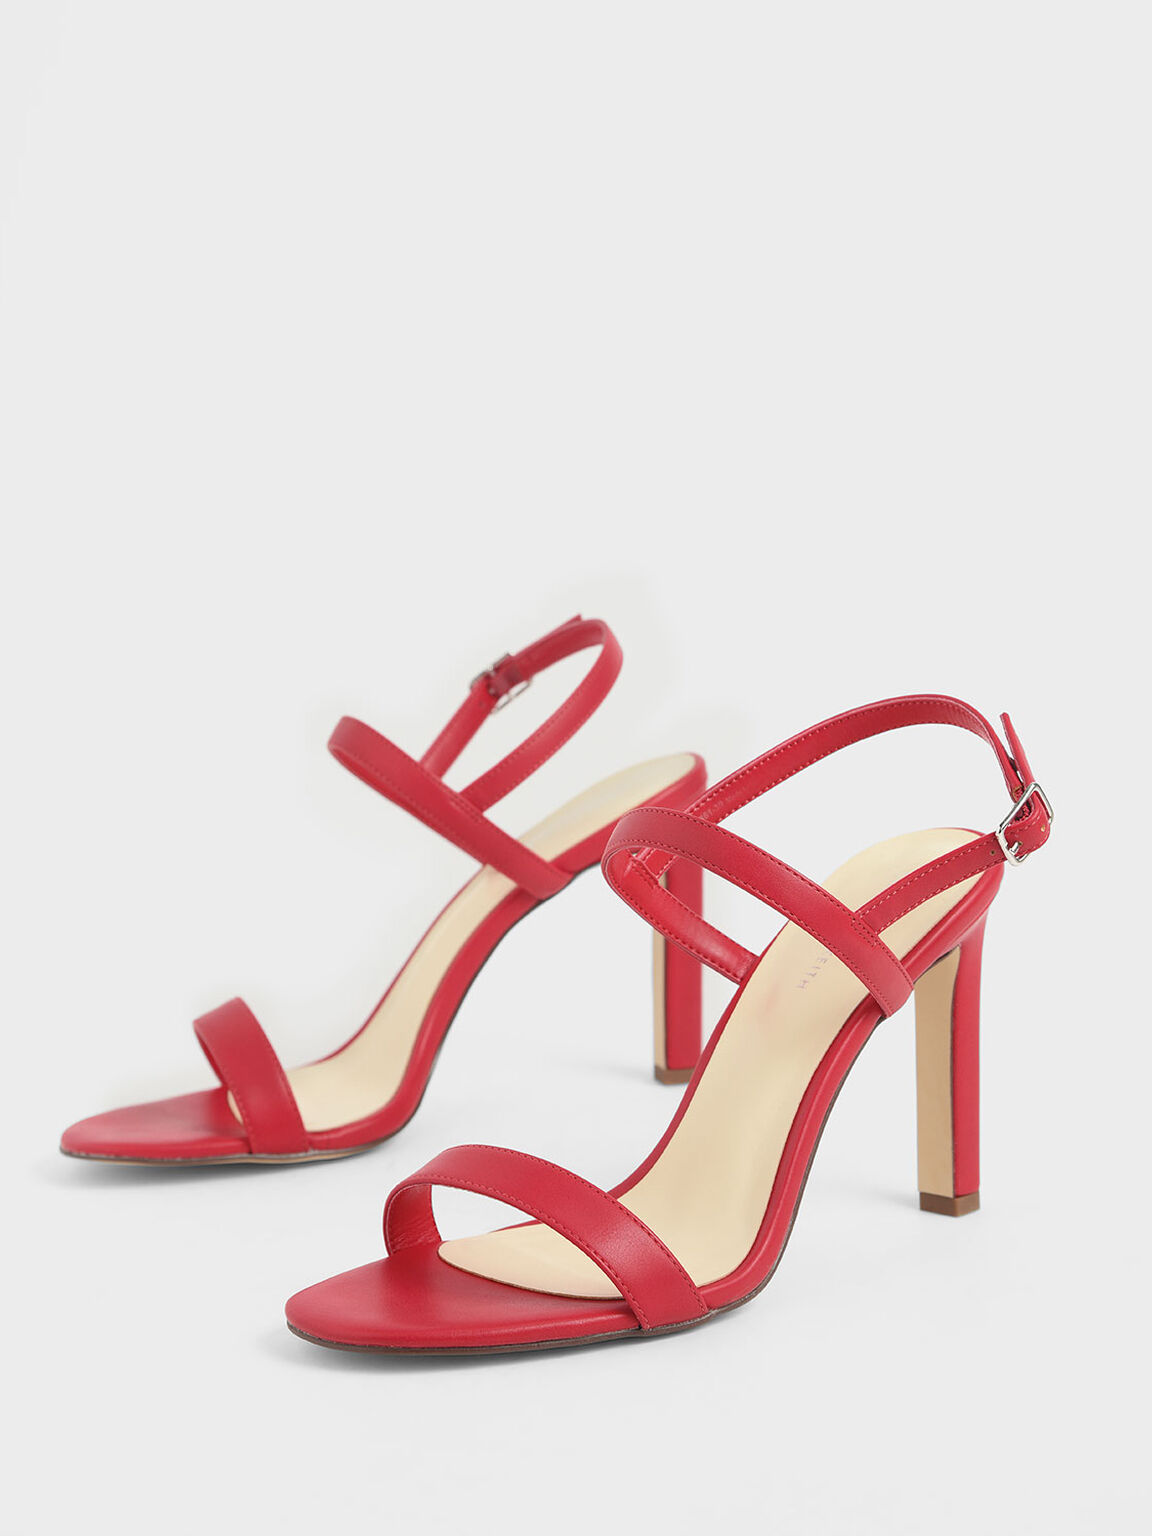 Slingback Stiletto Heel Sandals, Red, hi-res